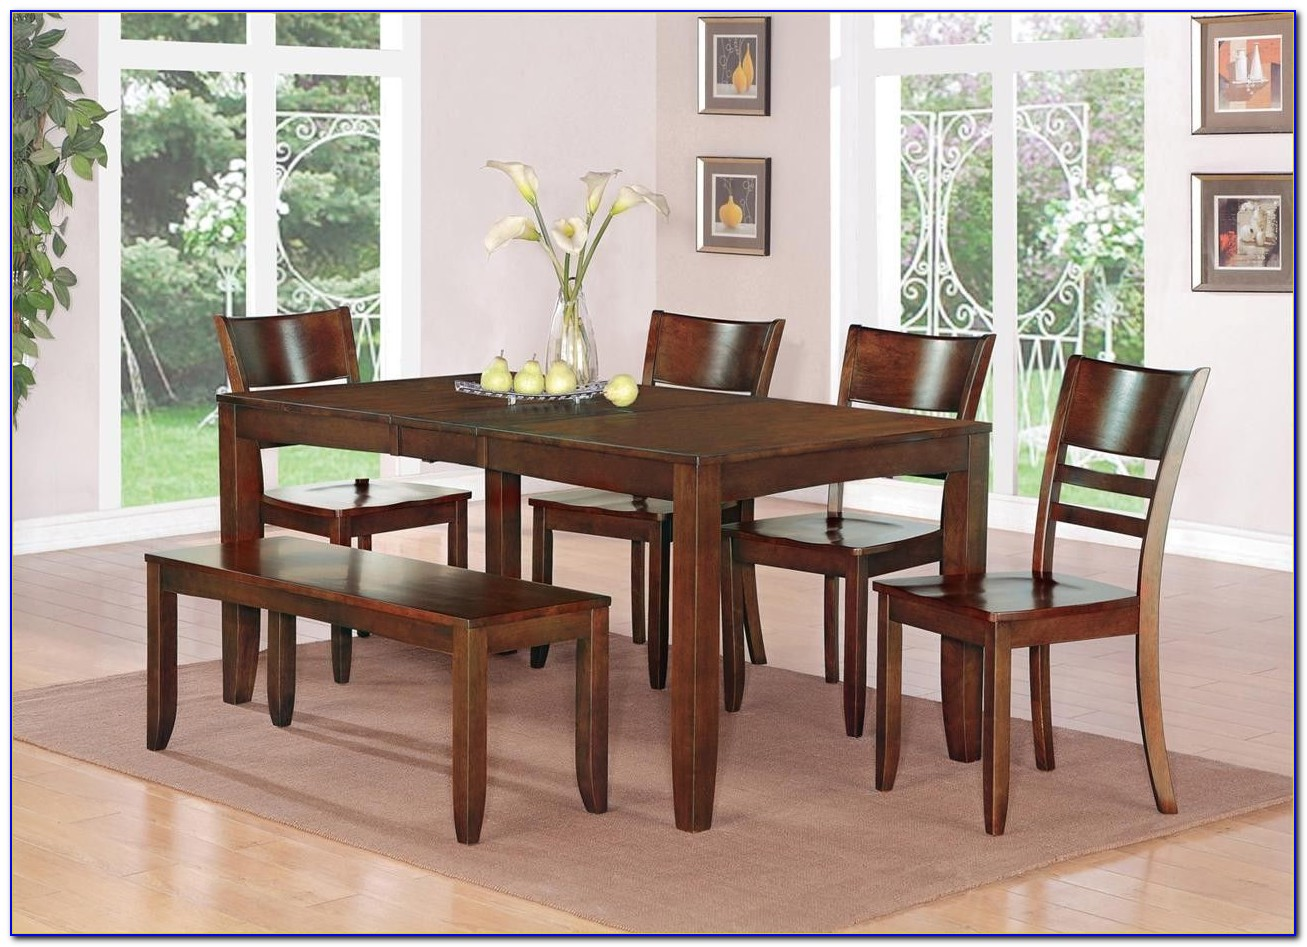 Bench Seat Dining Table Set